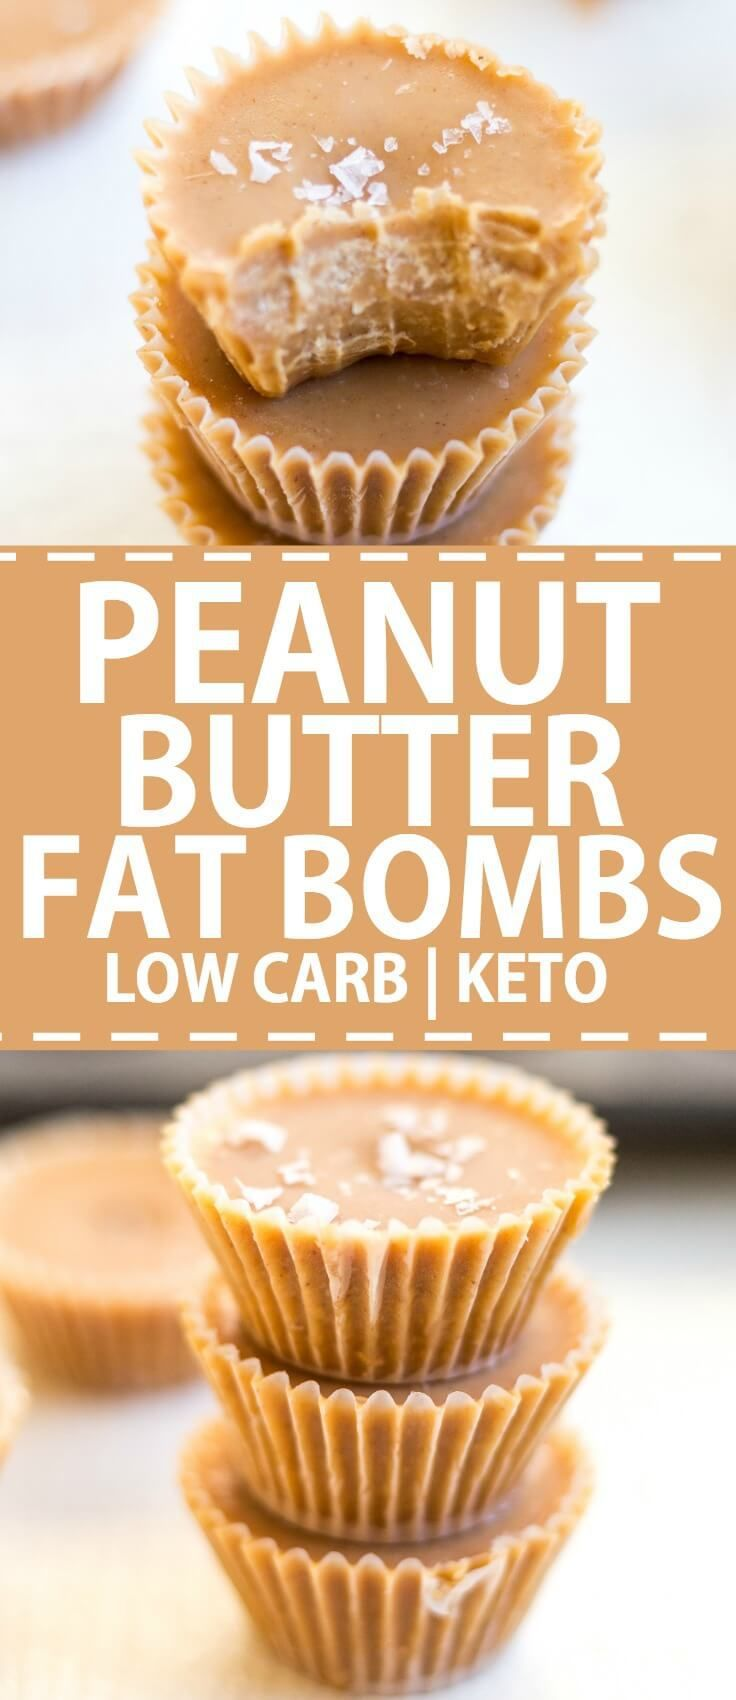 Peanut Butter Fat Bombs are a low carb keto recipe. This easy snack recipe is made with coconut oil and natural peanut butter for clean eating. Top with chocolate or sea salt.